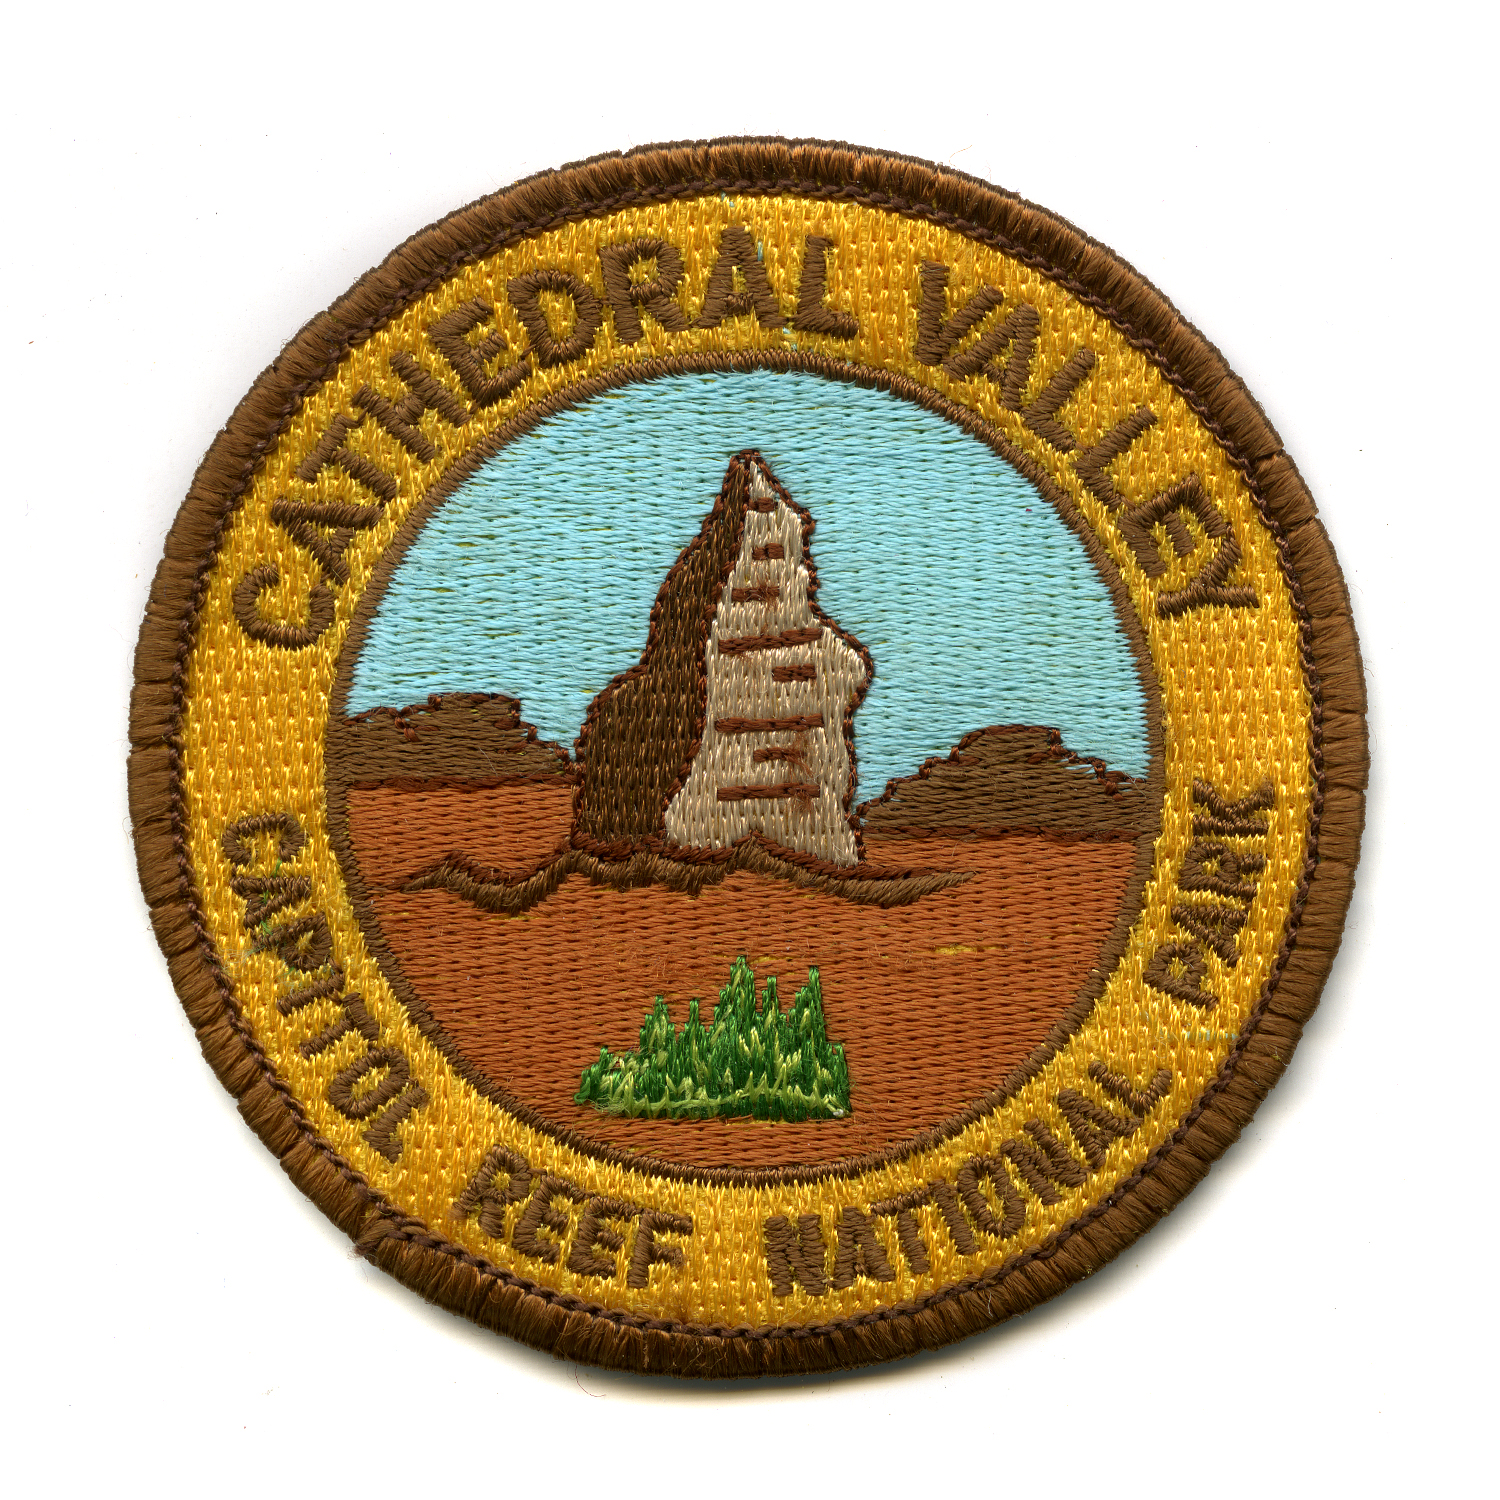 nps_patch_project_cathedral_valley_capitol_reef_national_park_patch_4.jpg